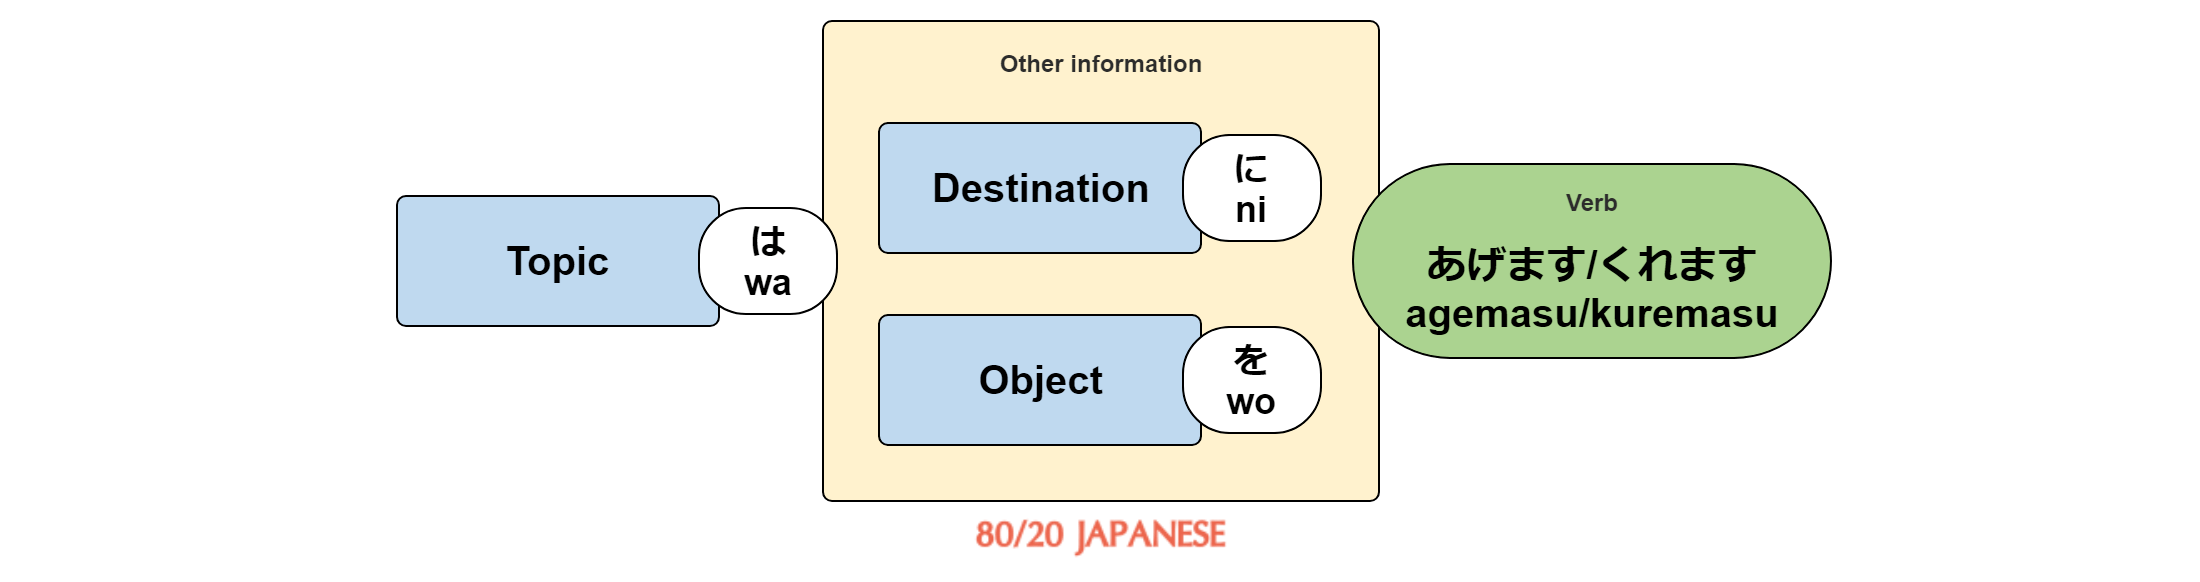 [topic] wa [destination] ni [object] wo agemasu/kuremasu